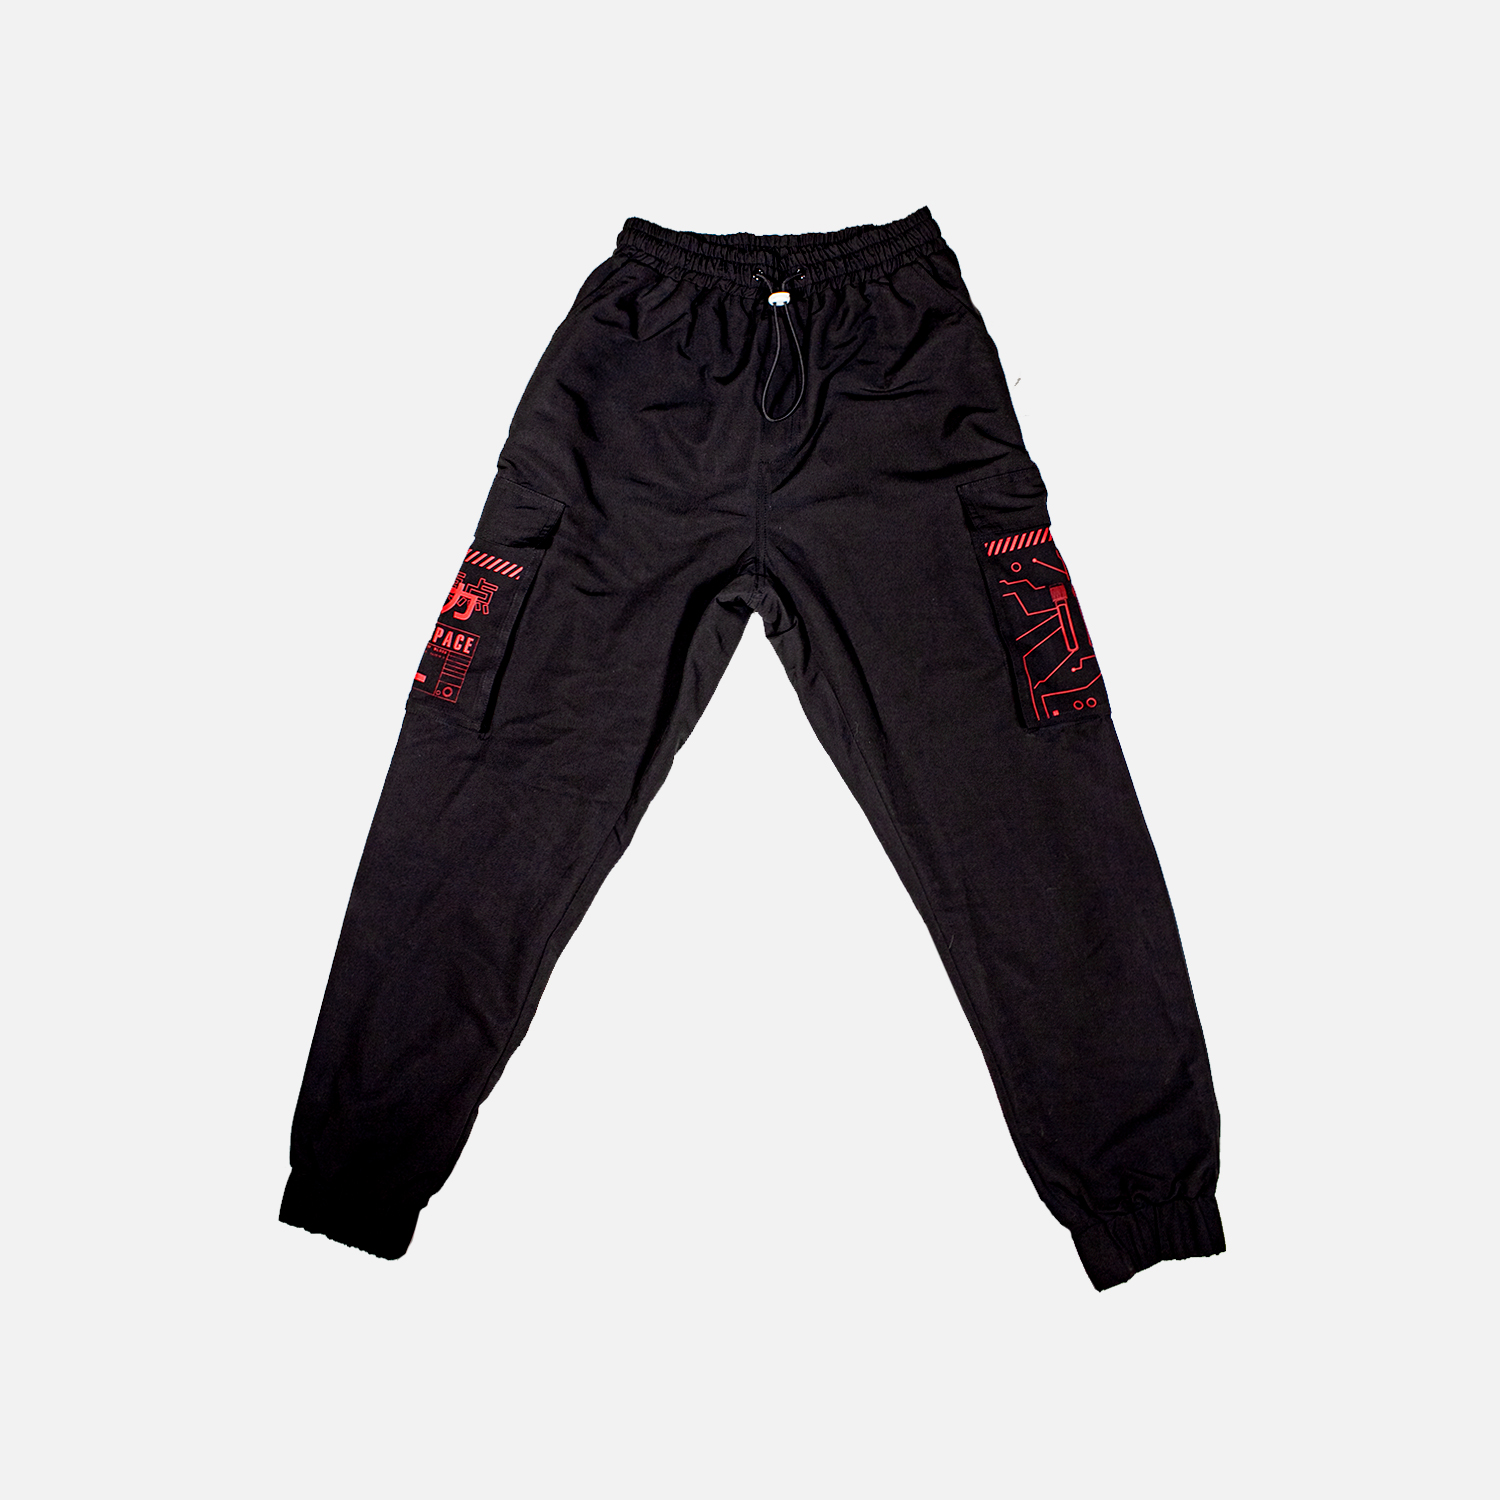 SLEEPING GOD COMBAT PANTS